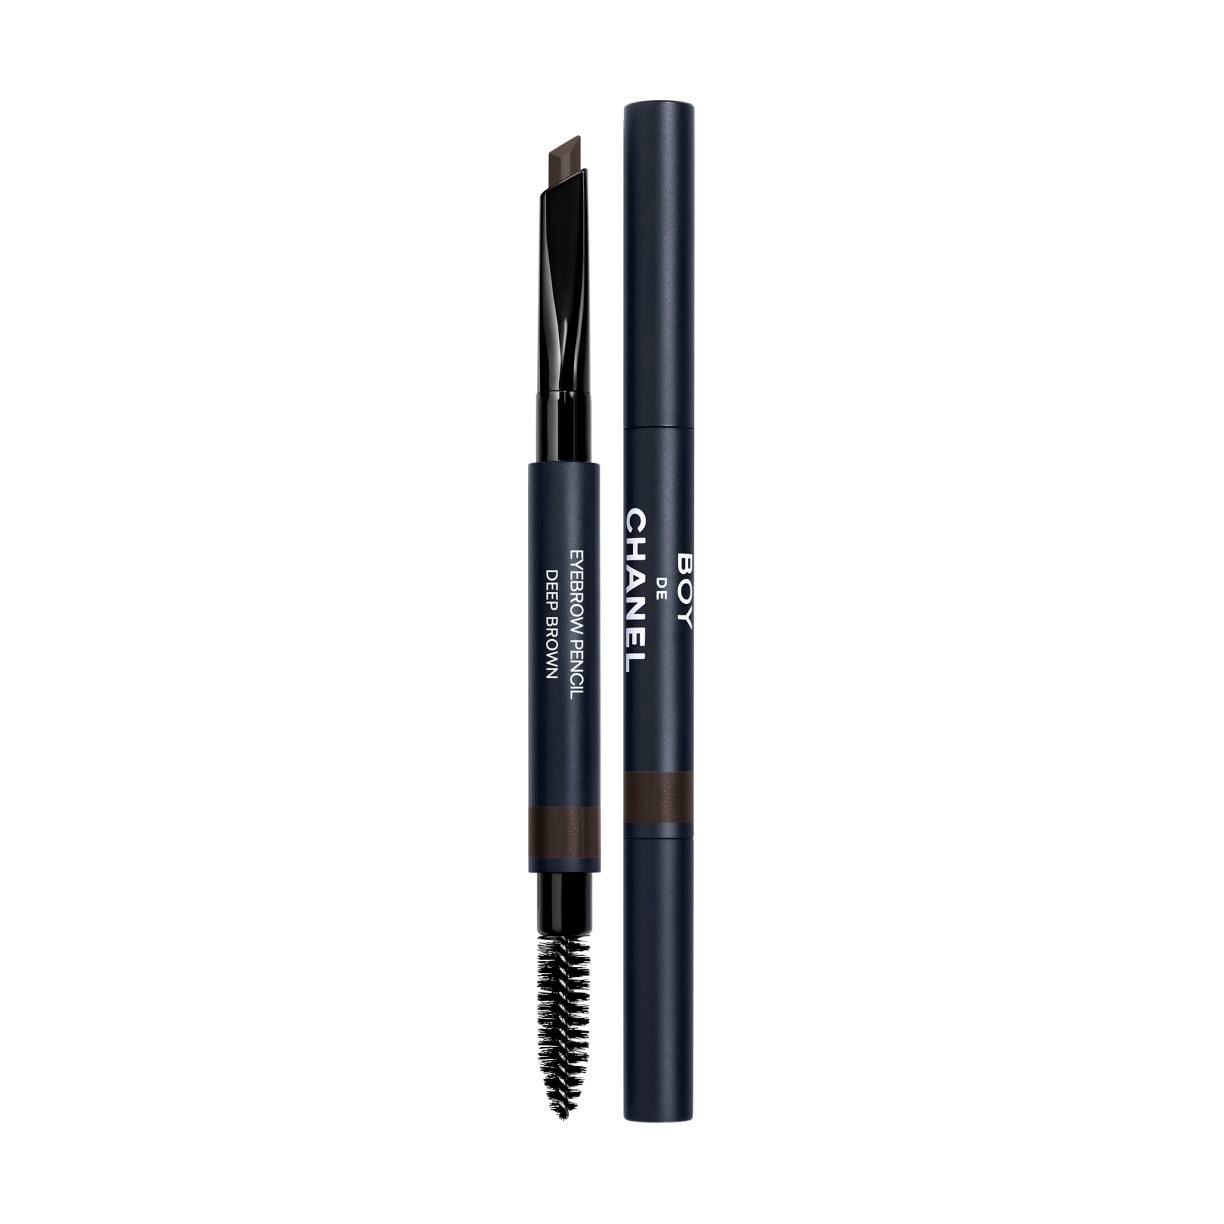 BOY DE CHANEL LE STYLO SOURCILS LANGHOUDEND WATERPROOF WENKBRAUWPOTLOOD 206 - DEEP BROWN